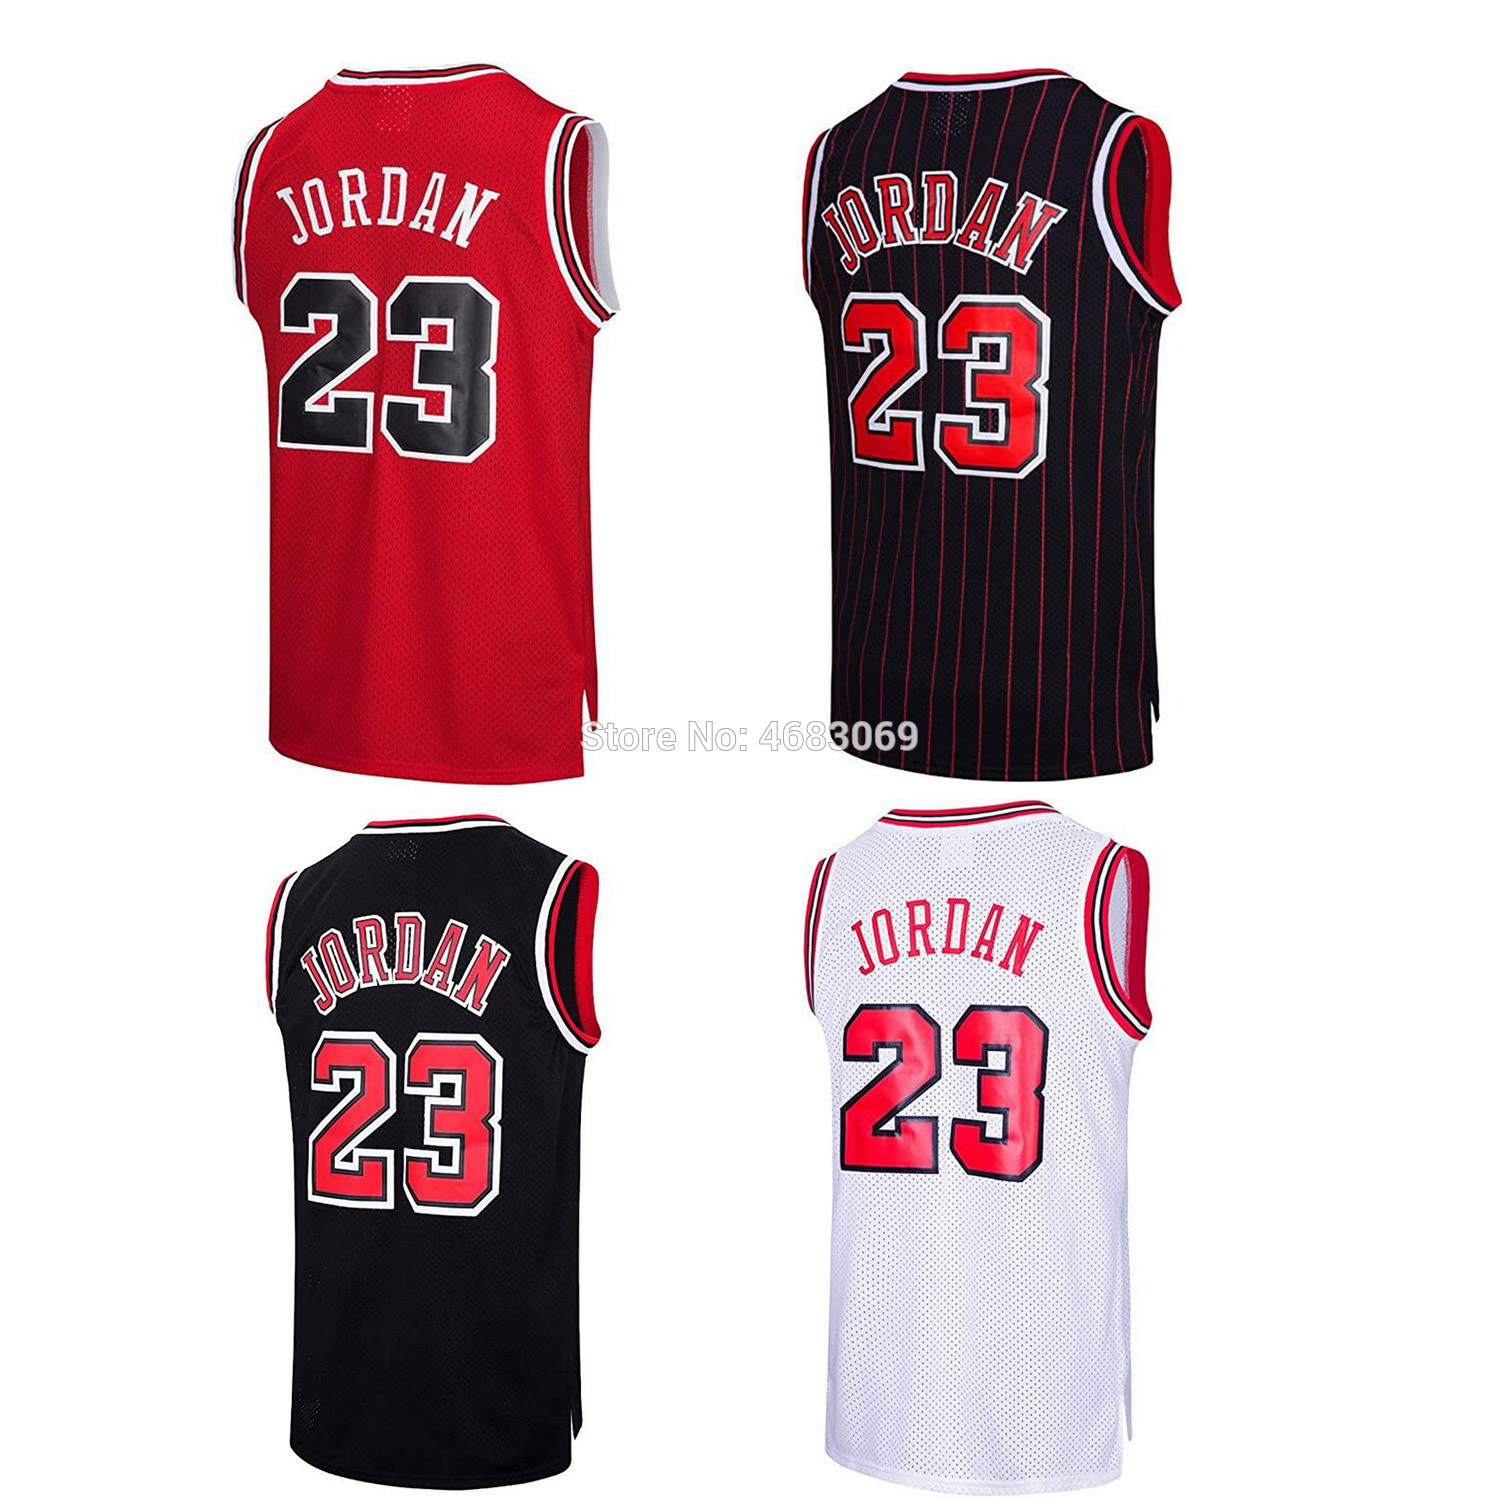 AIFFEE Sports Tank Tops Shirts #23 Throwback Swingman Jordan Classics Jersey Red Black White Stripe Stitched US STOCK(China)